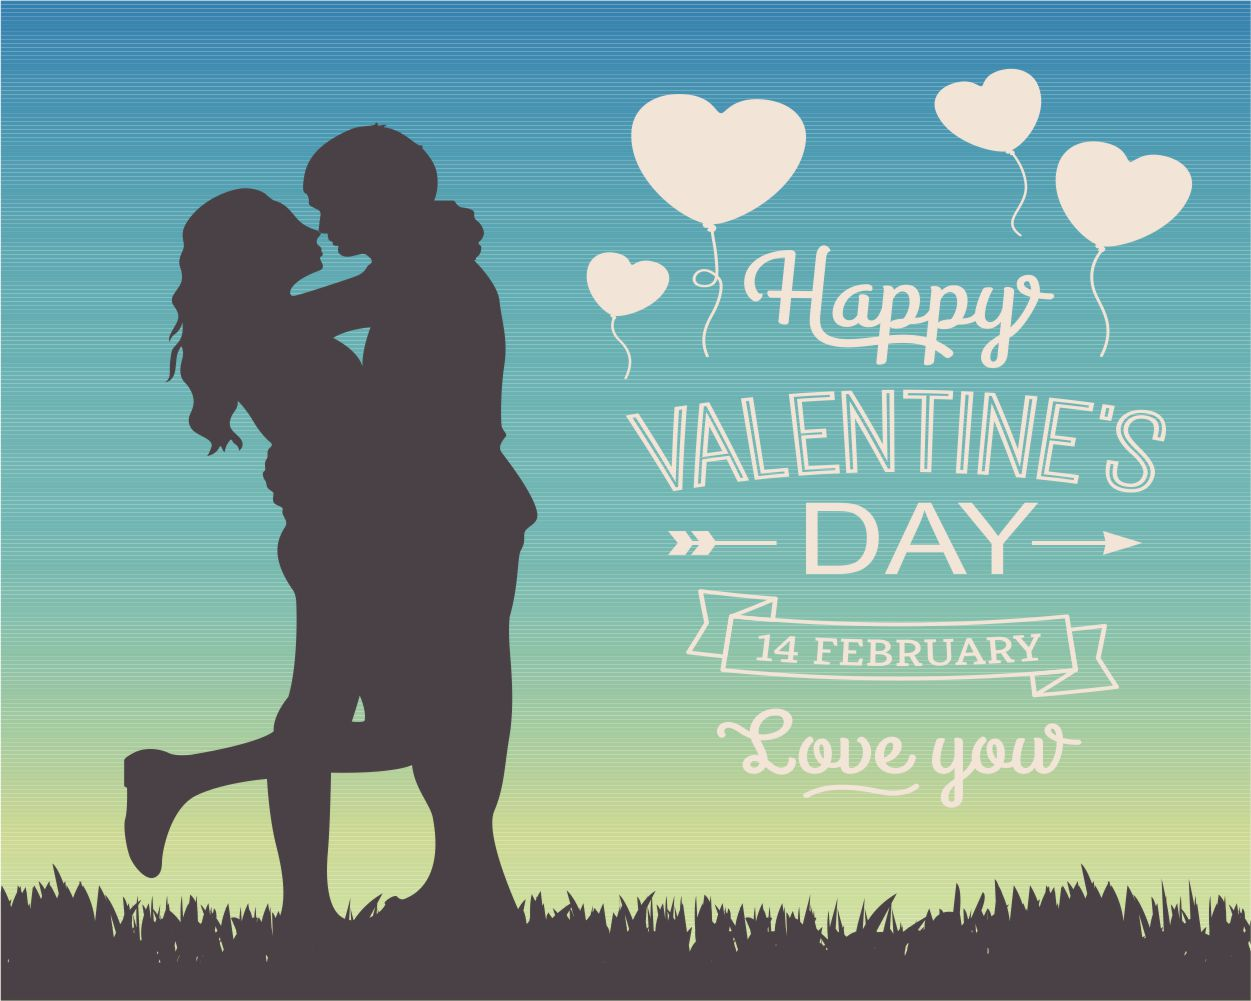 Happy valentines day 2016 quotes for her with images for Love valentines day quotes